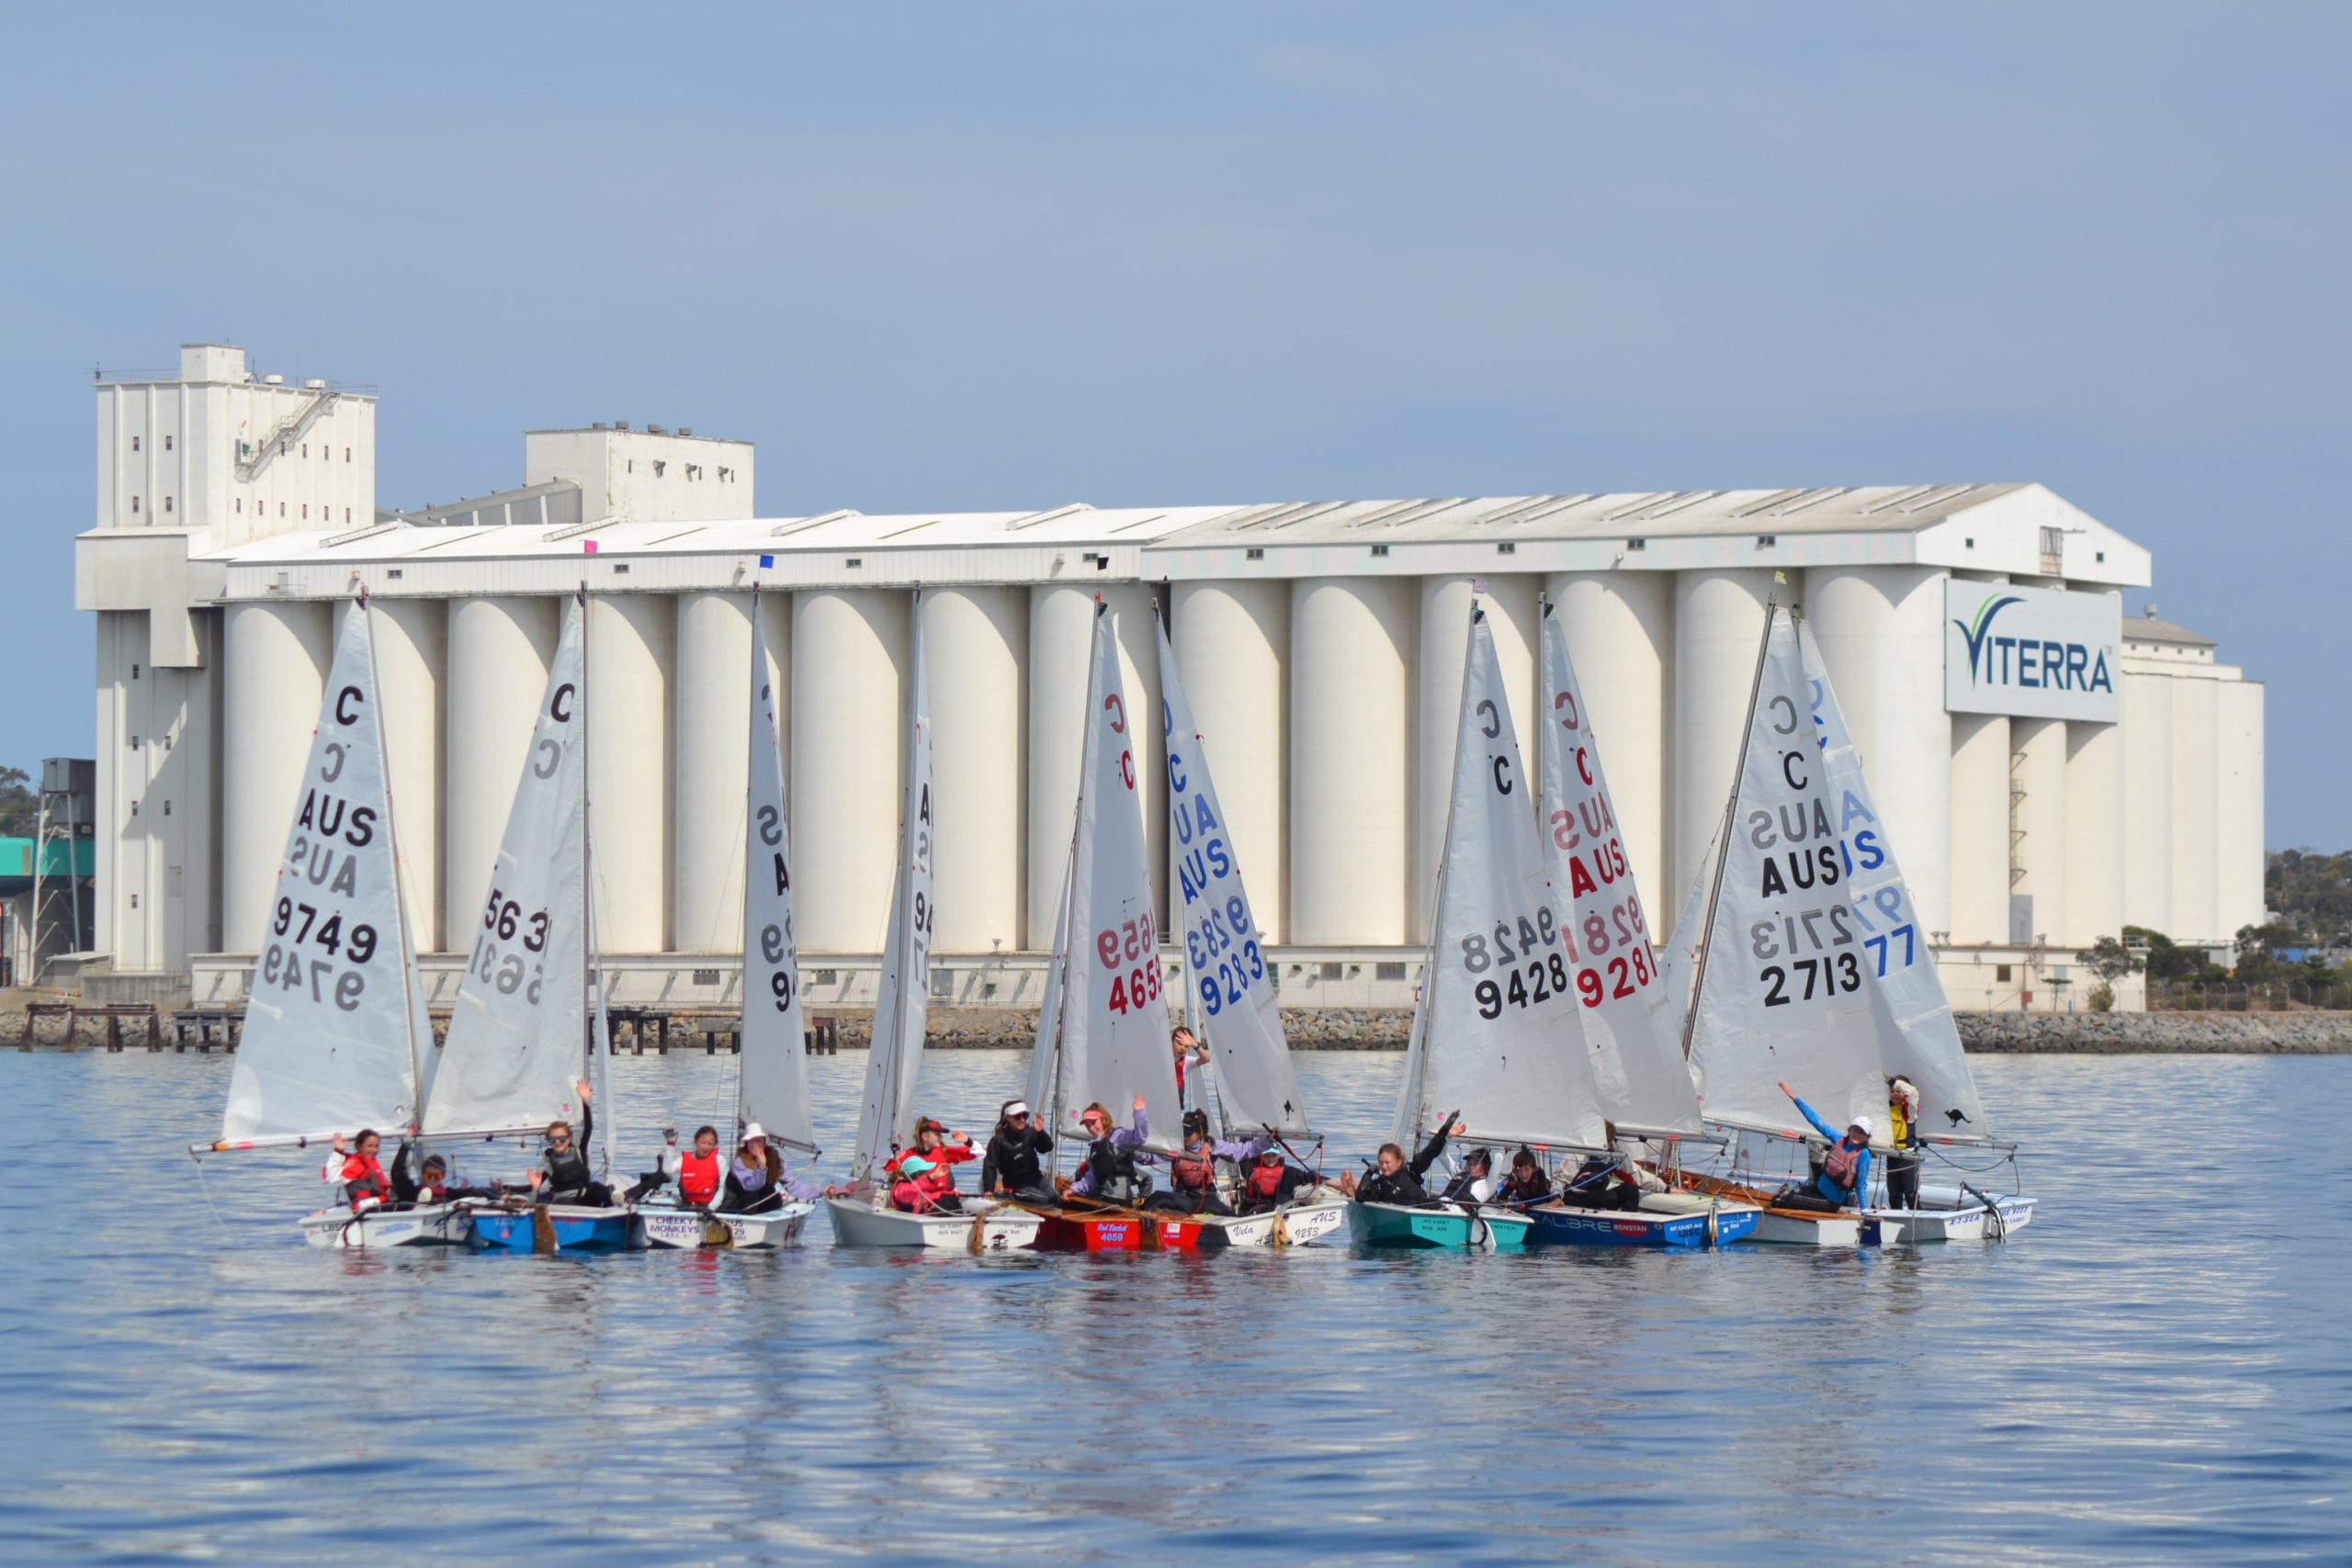 Wild weather won't stop youth sailing